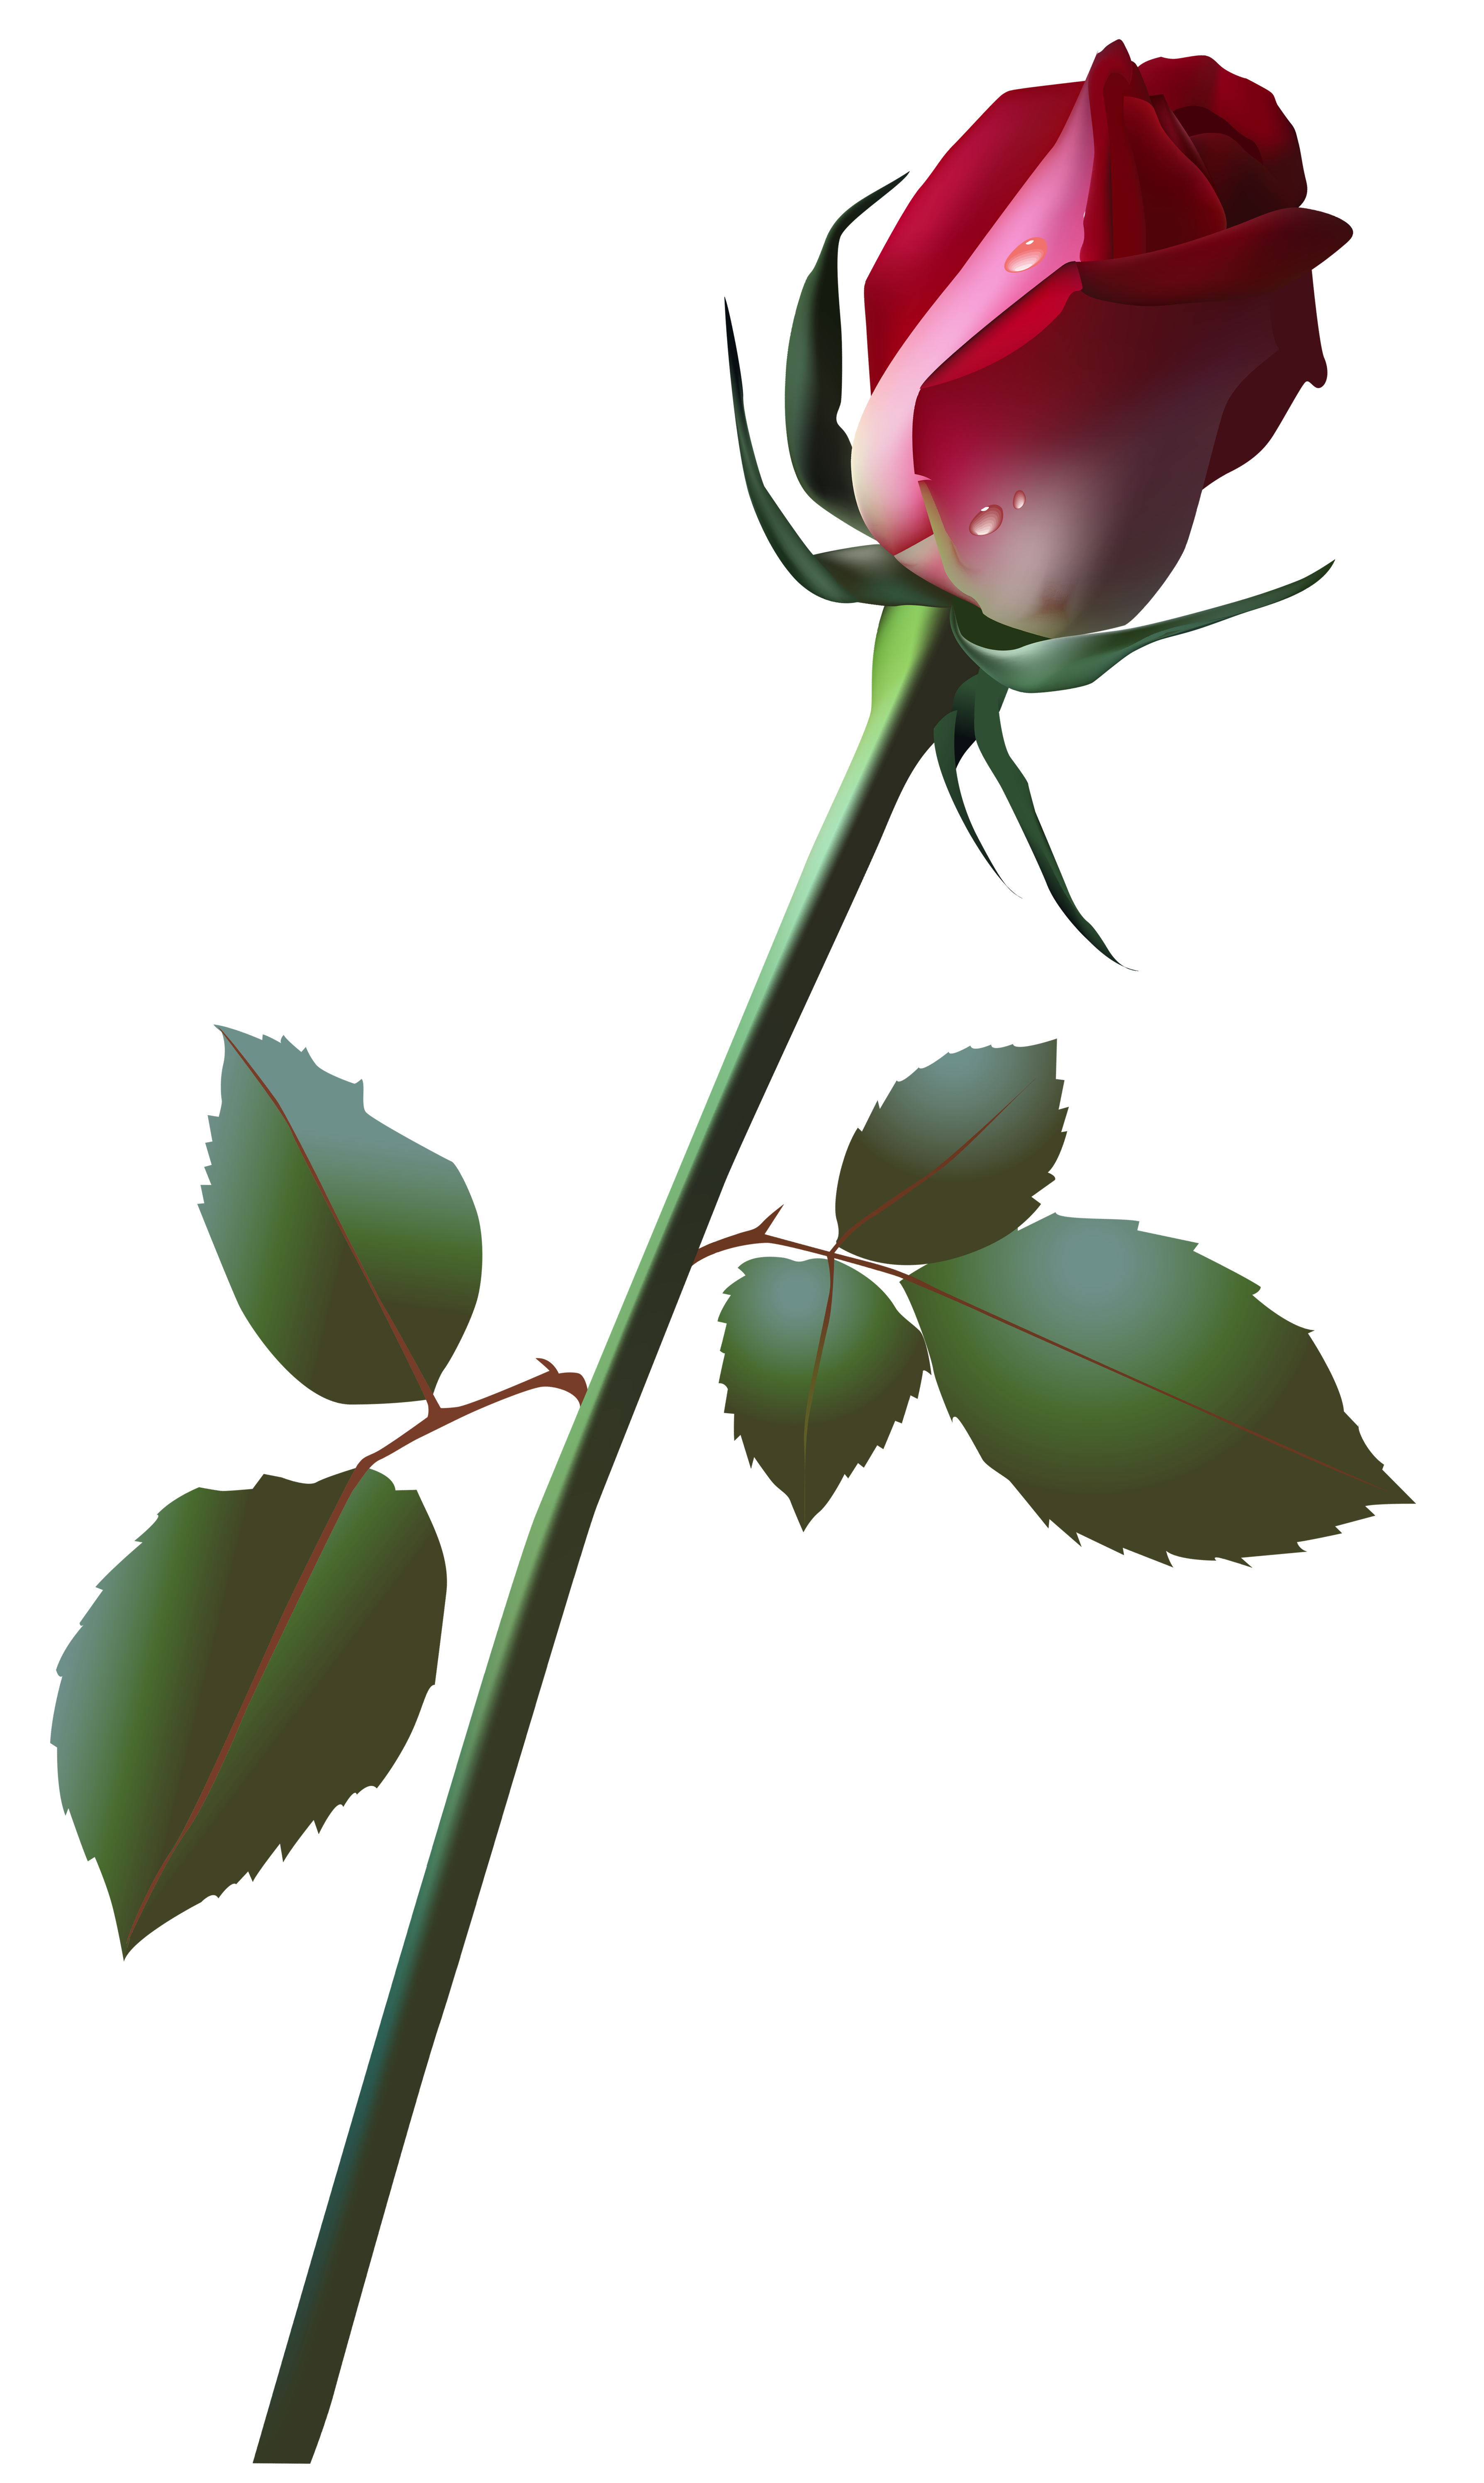 Beautiful Rose Bud PNG Clip Art Image.